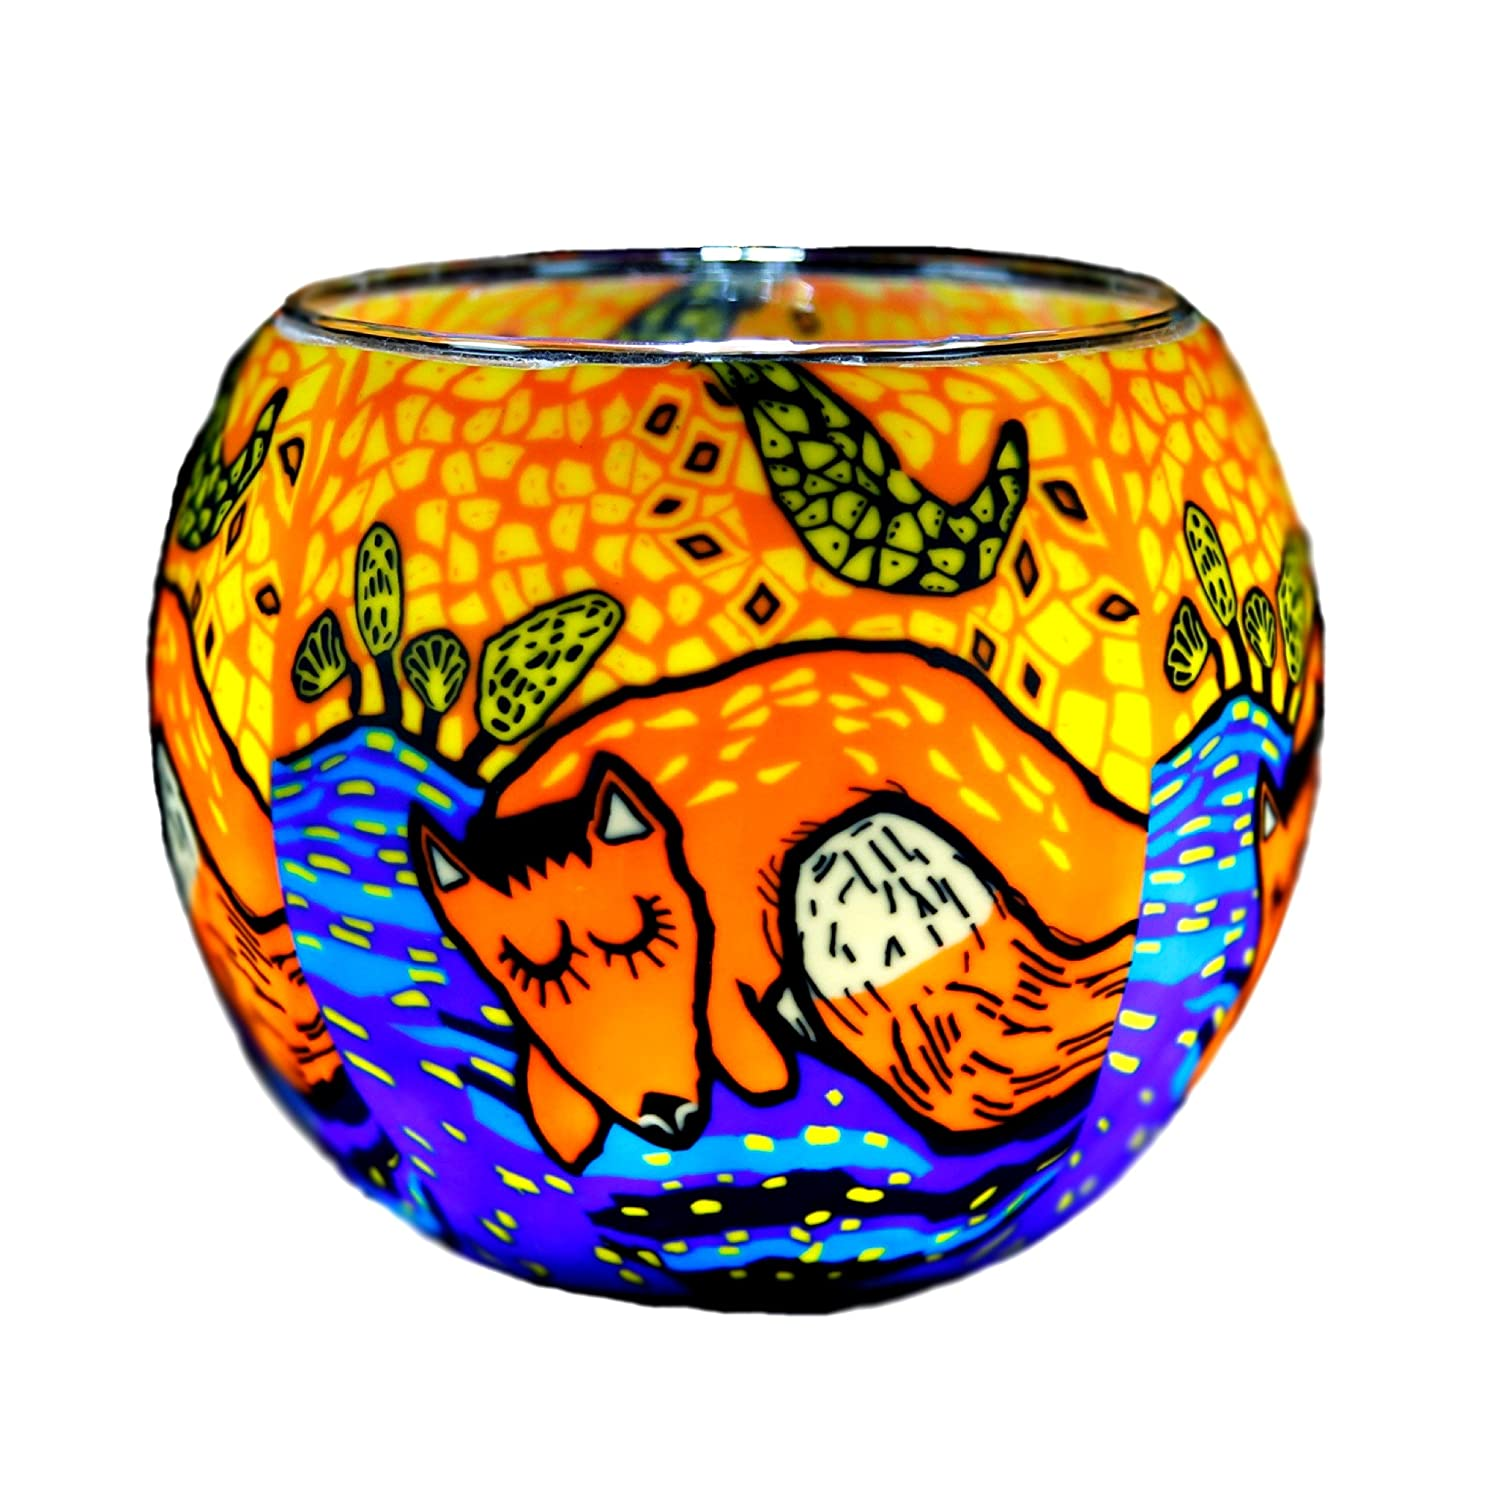 Kerzenfarm Plaristo Glowing Glass Fox Tealight Holder, Multi-Colour, 11 cm Diameter 21122